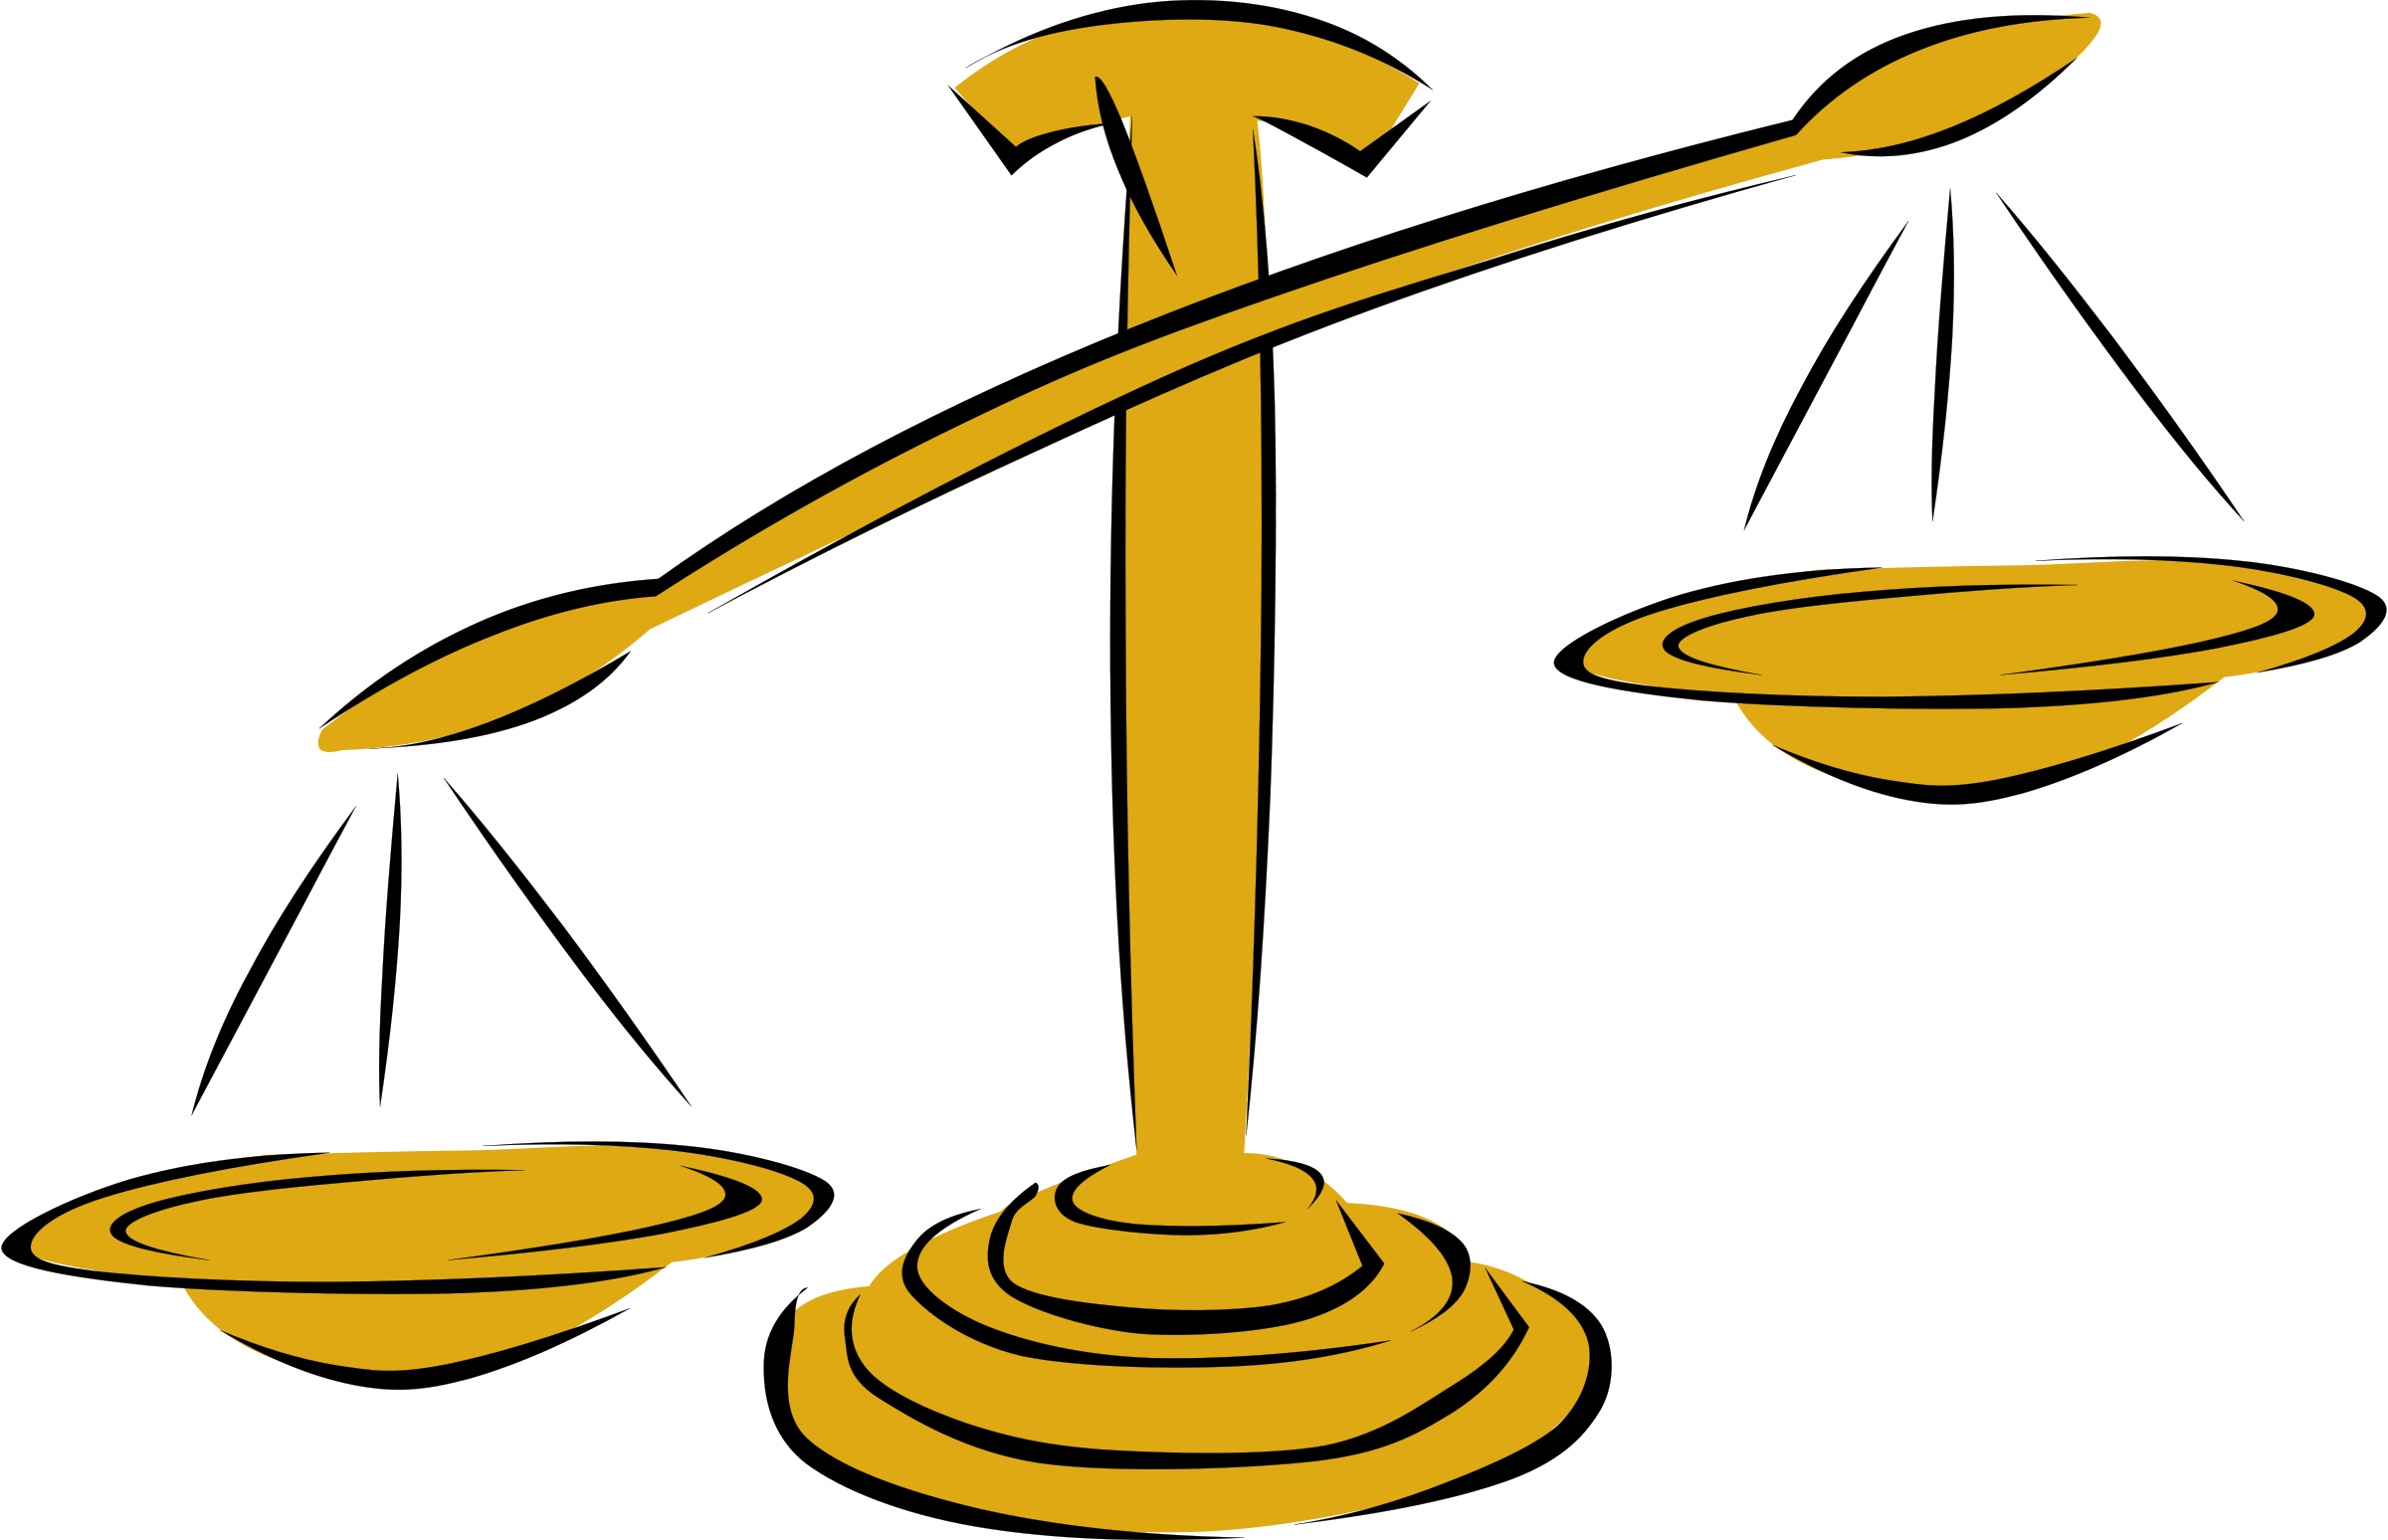 Justice clipart science mass. Free scale cliparts download